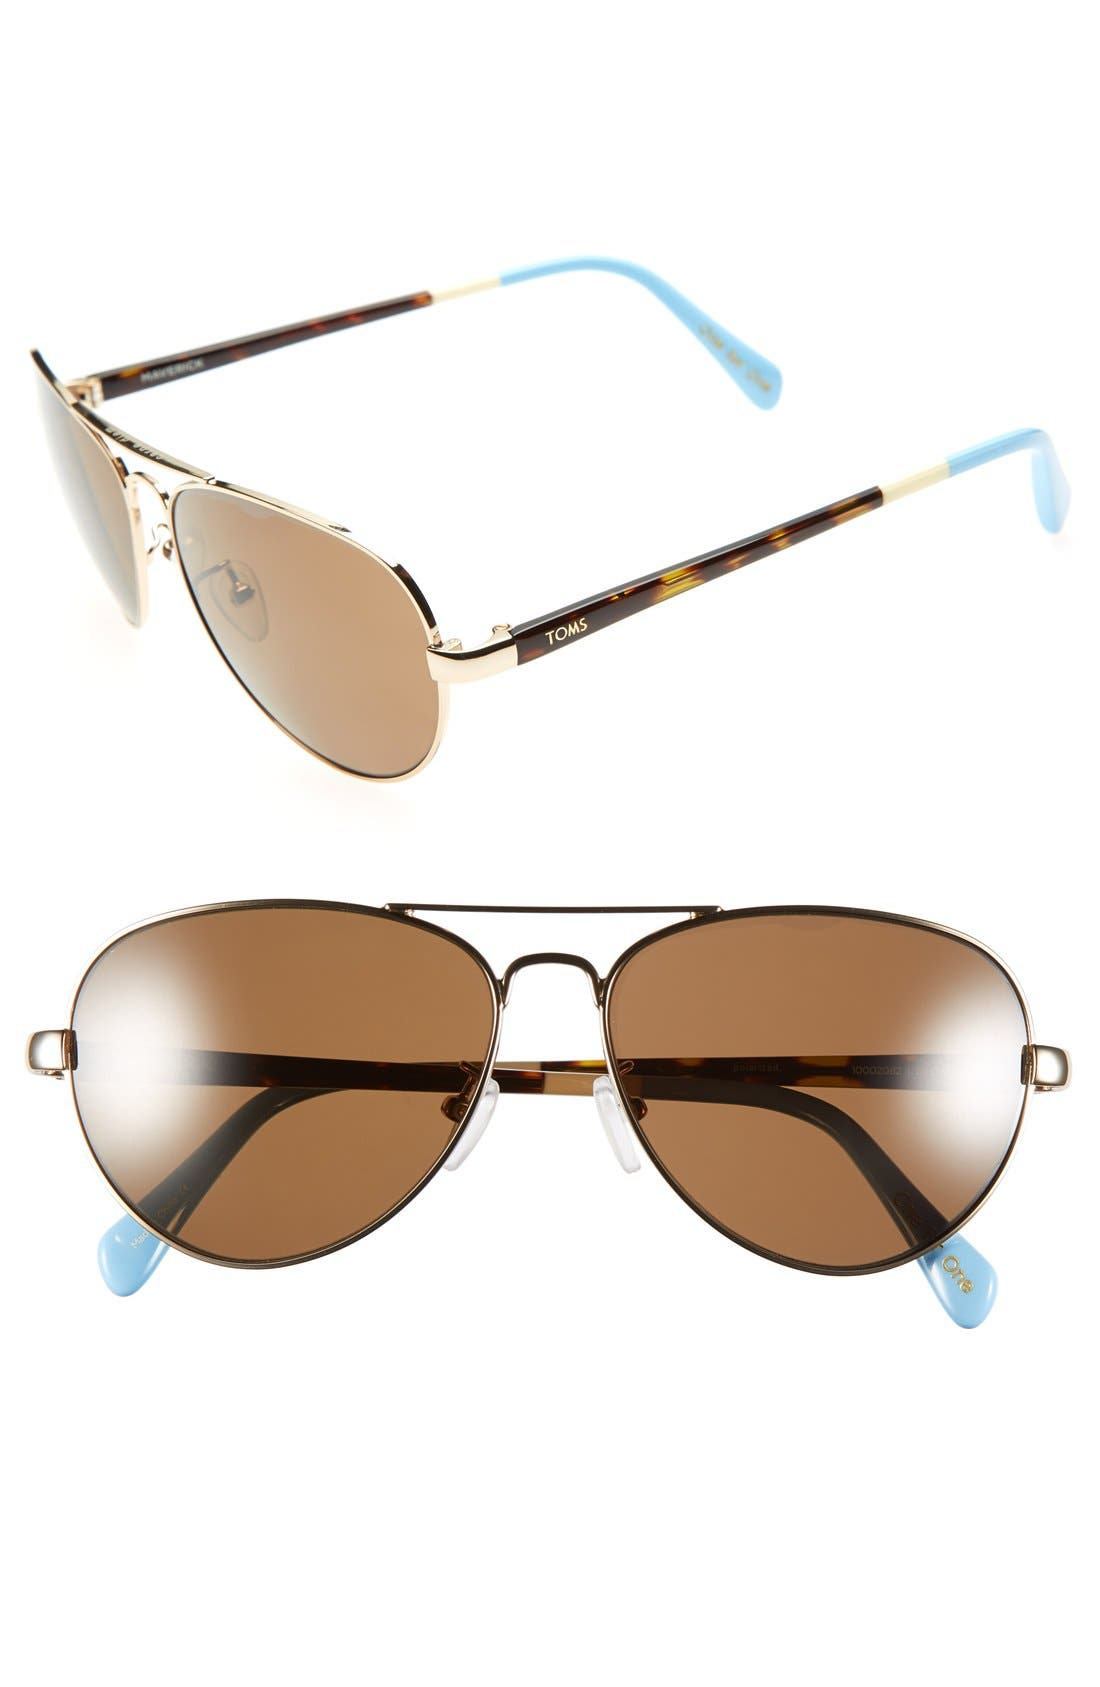 Main Image - TOMS 'Maverick' 59mm Polarized Aviator Sunglasses